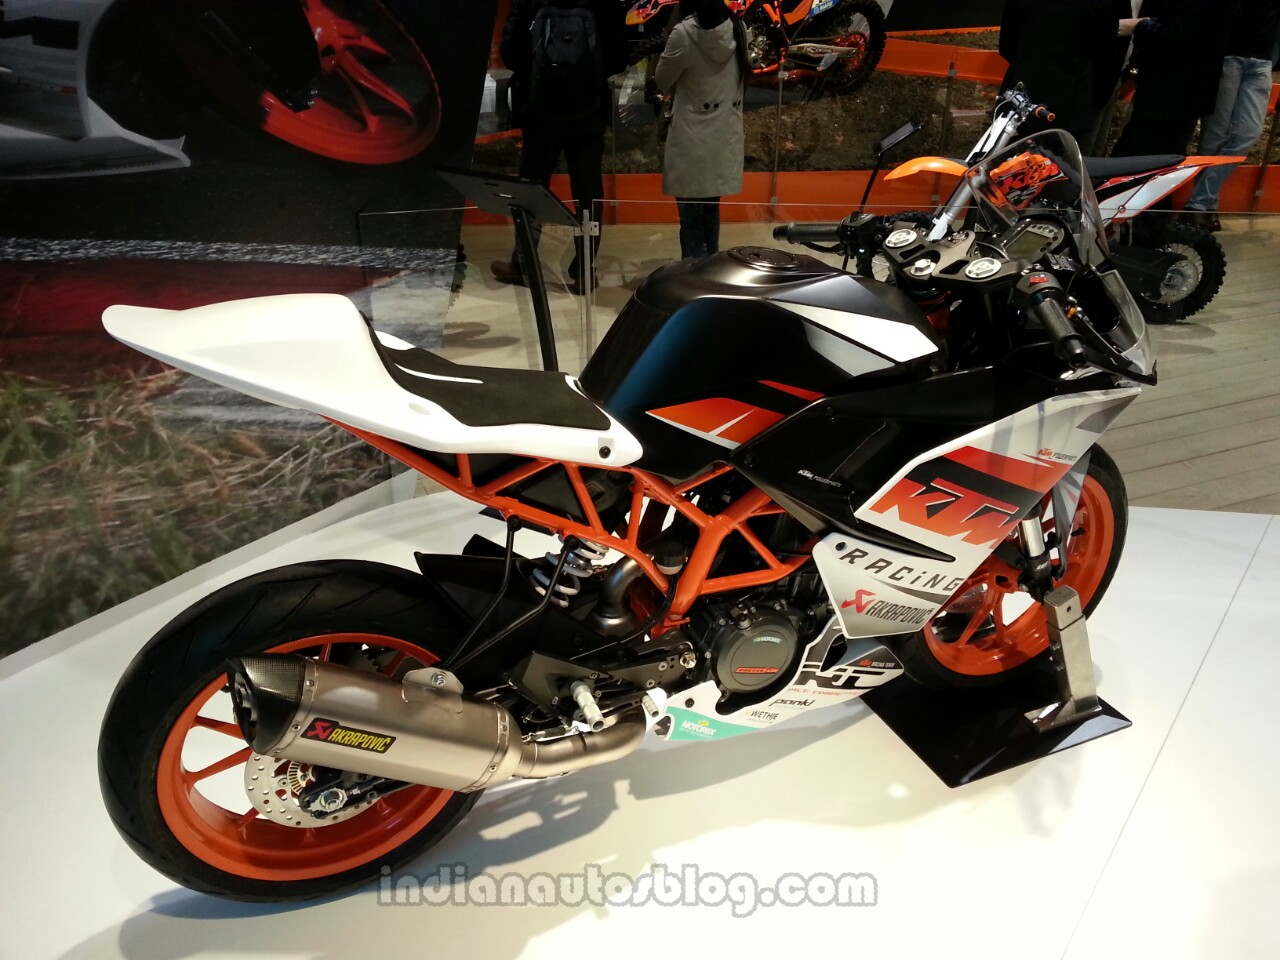 KTM to offer two engine maps for 200, 390 Duke